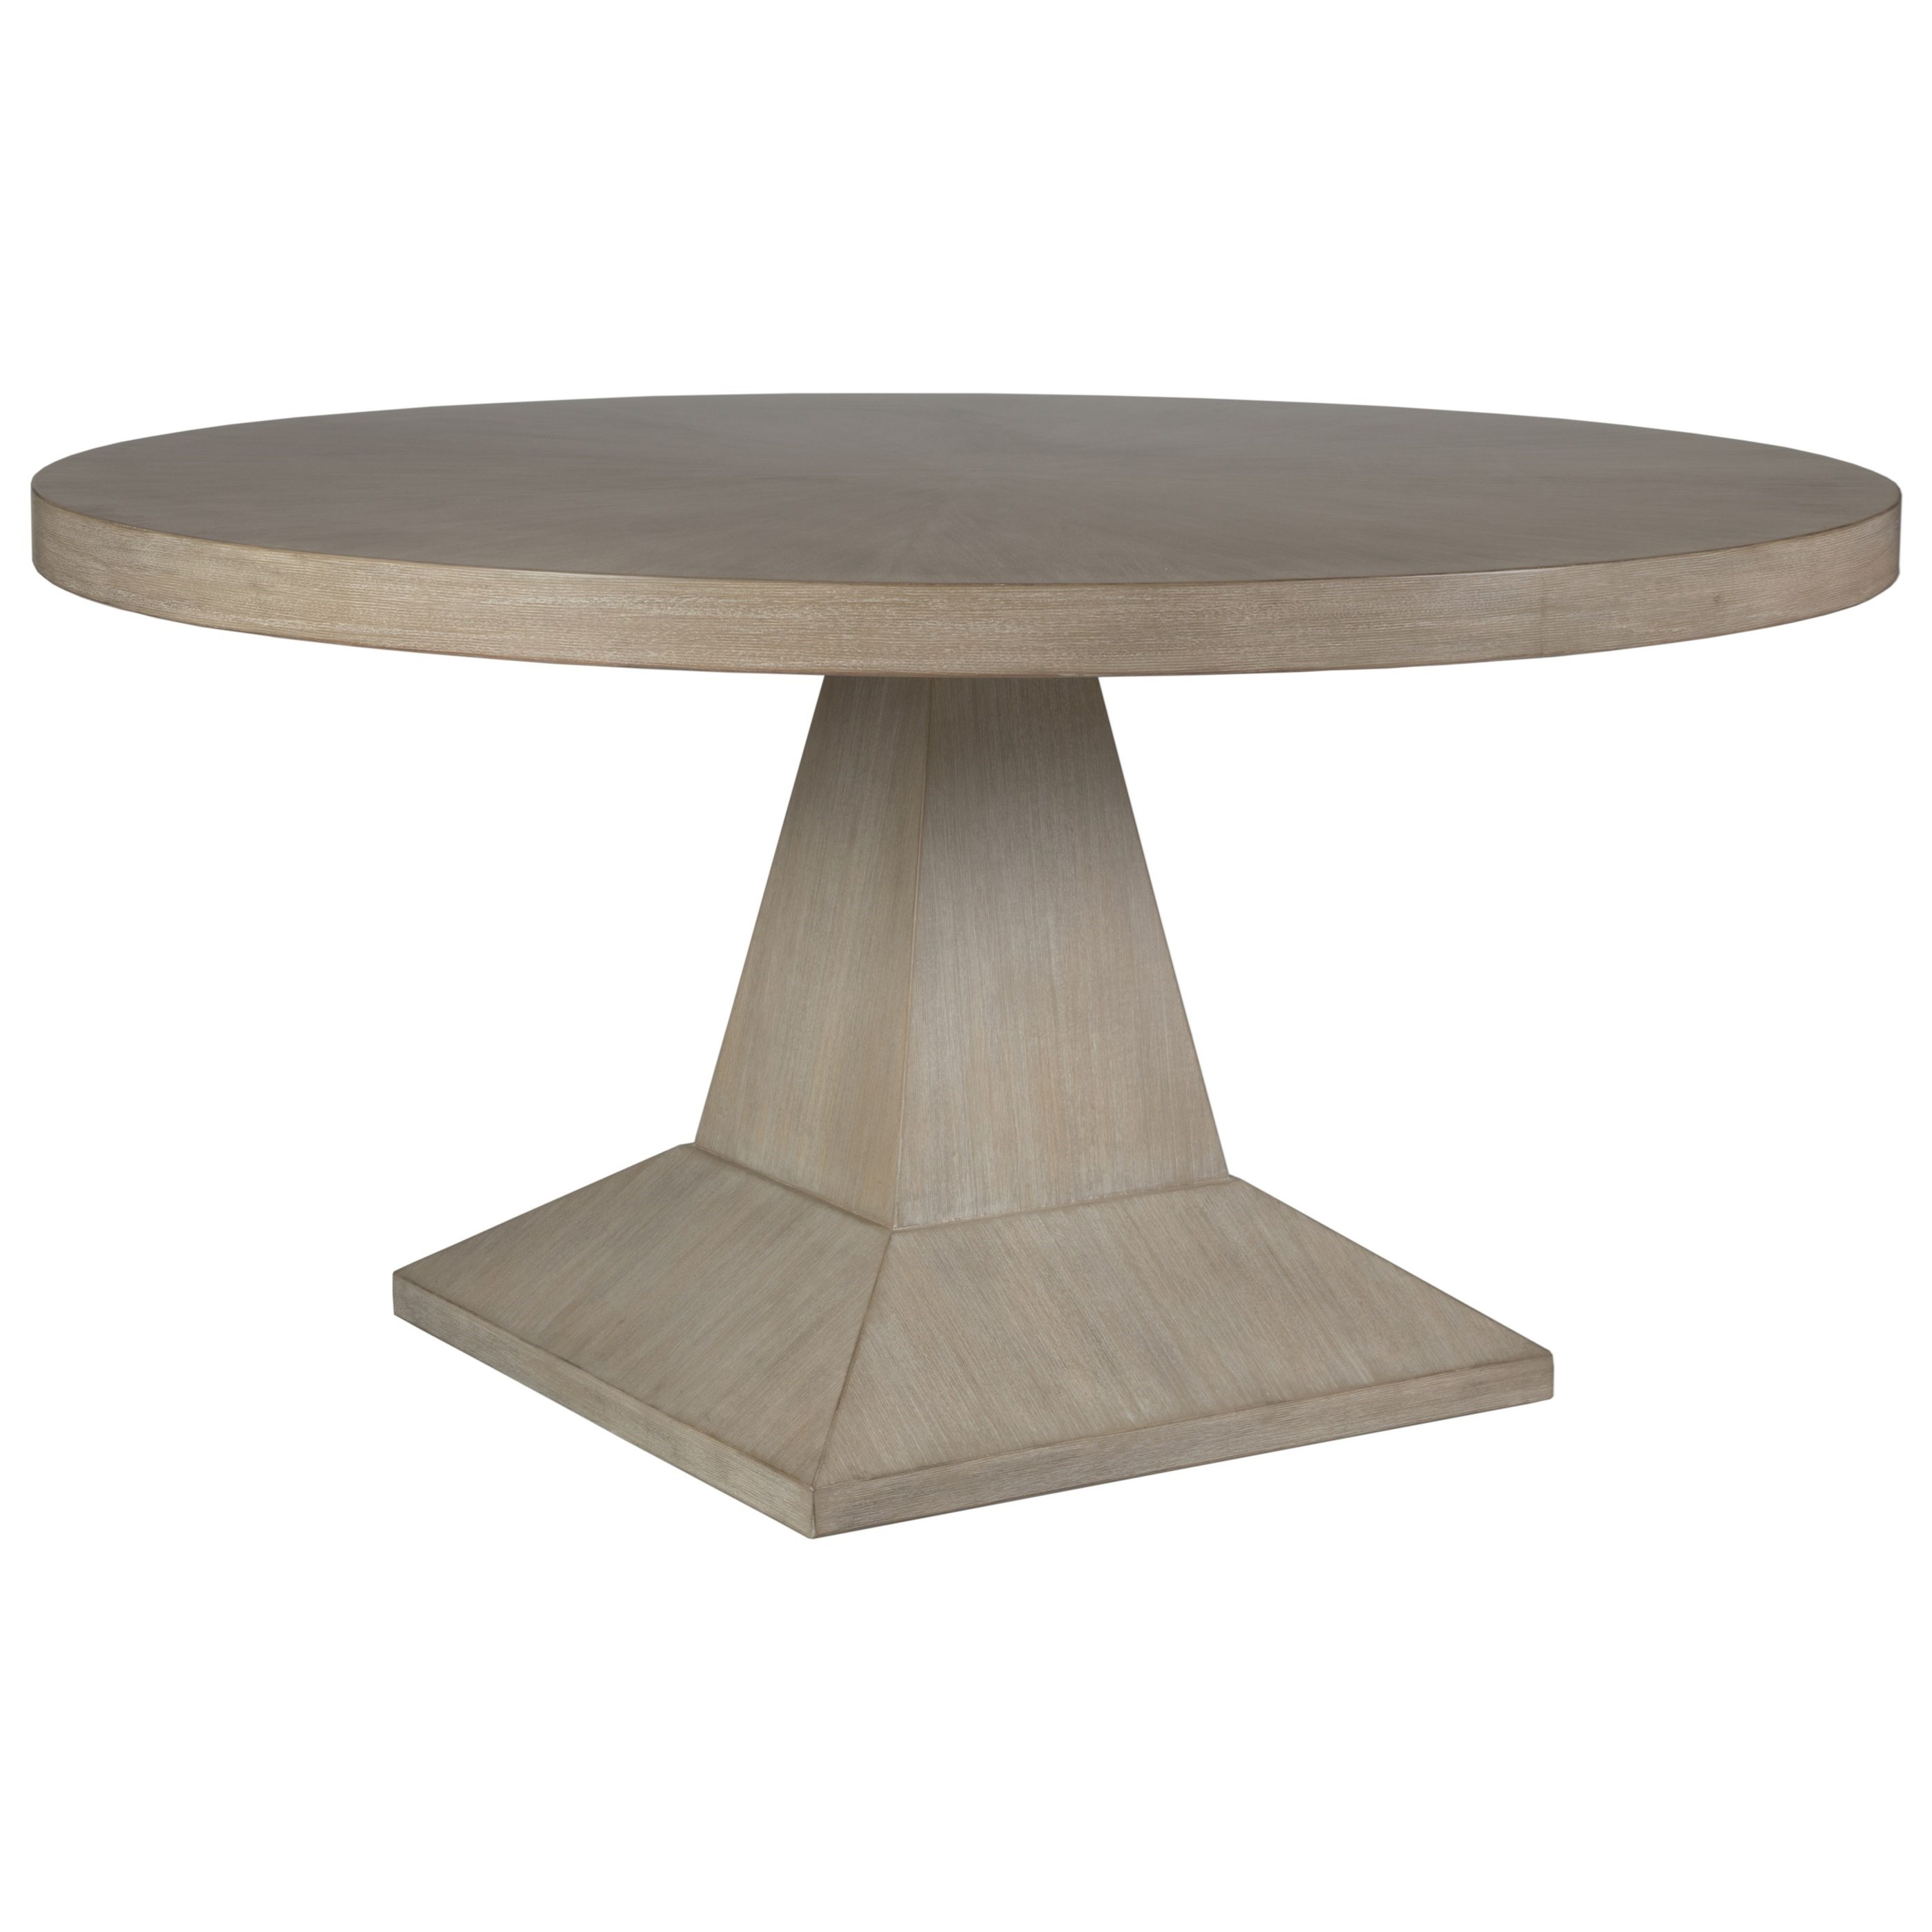 Cohesion Chronicle Round Dining Table by Artistica at Baer's Furniture